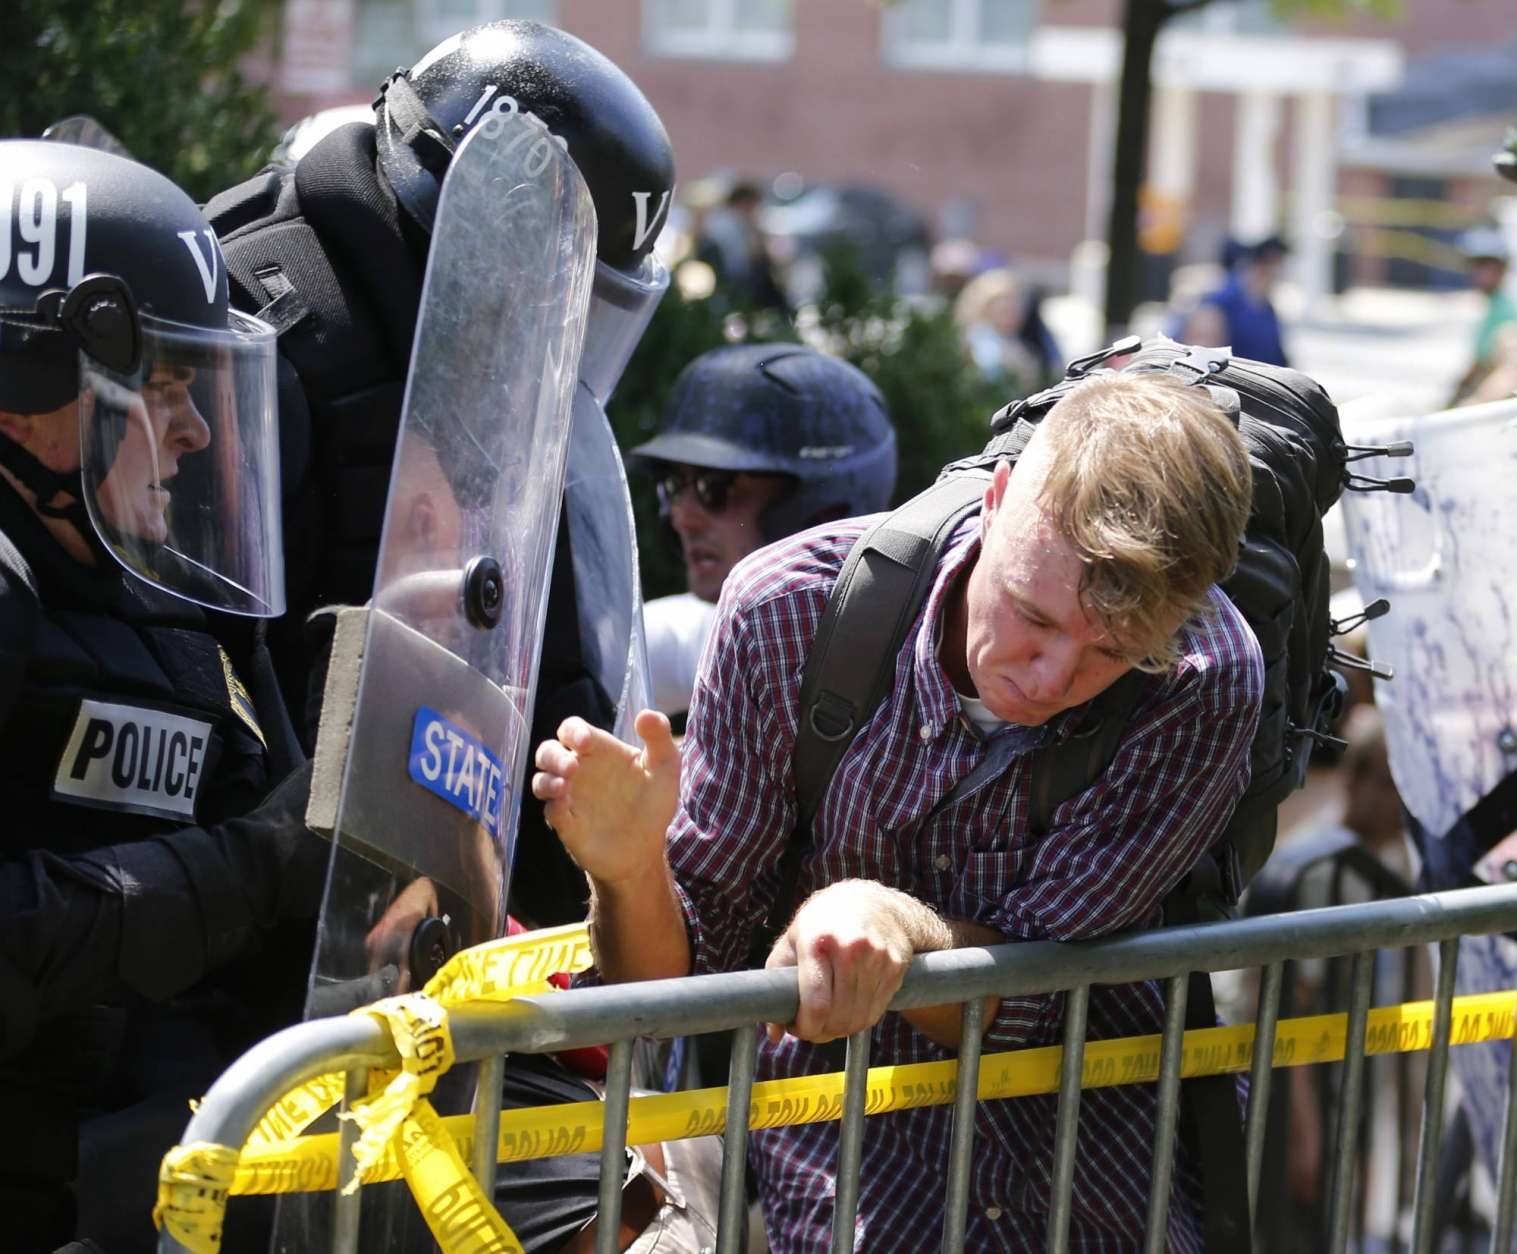 An white nationalist demonstrator is pushed out of the park by police at the entrance to Lee Park in Charlottesville, Va., Saturday, Aug. 12, 2017.  Gov. Terry McAuliffe declared a state of emergency and police dressed in riot gear ordered people to disperse after chaotic violent clashes between white nationalists and counter protestors. (AP Photo/Steve Helber)